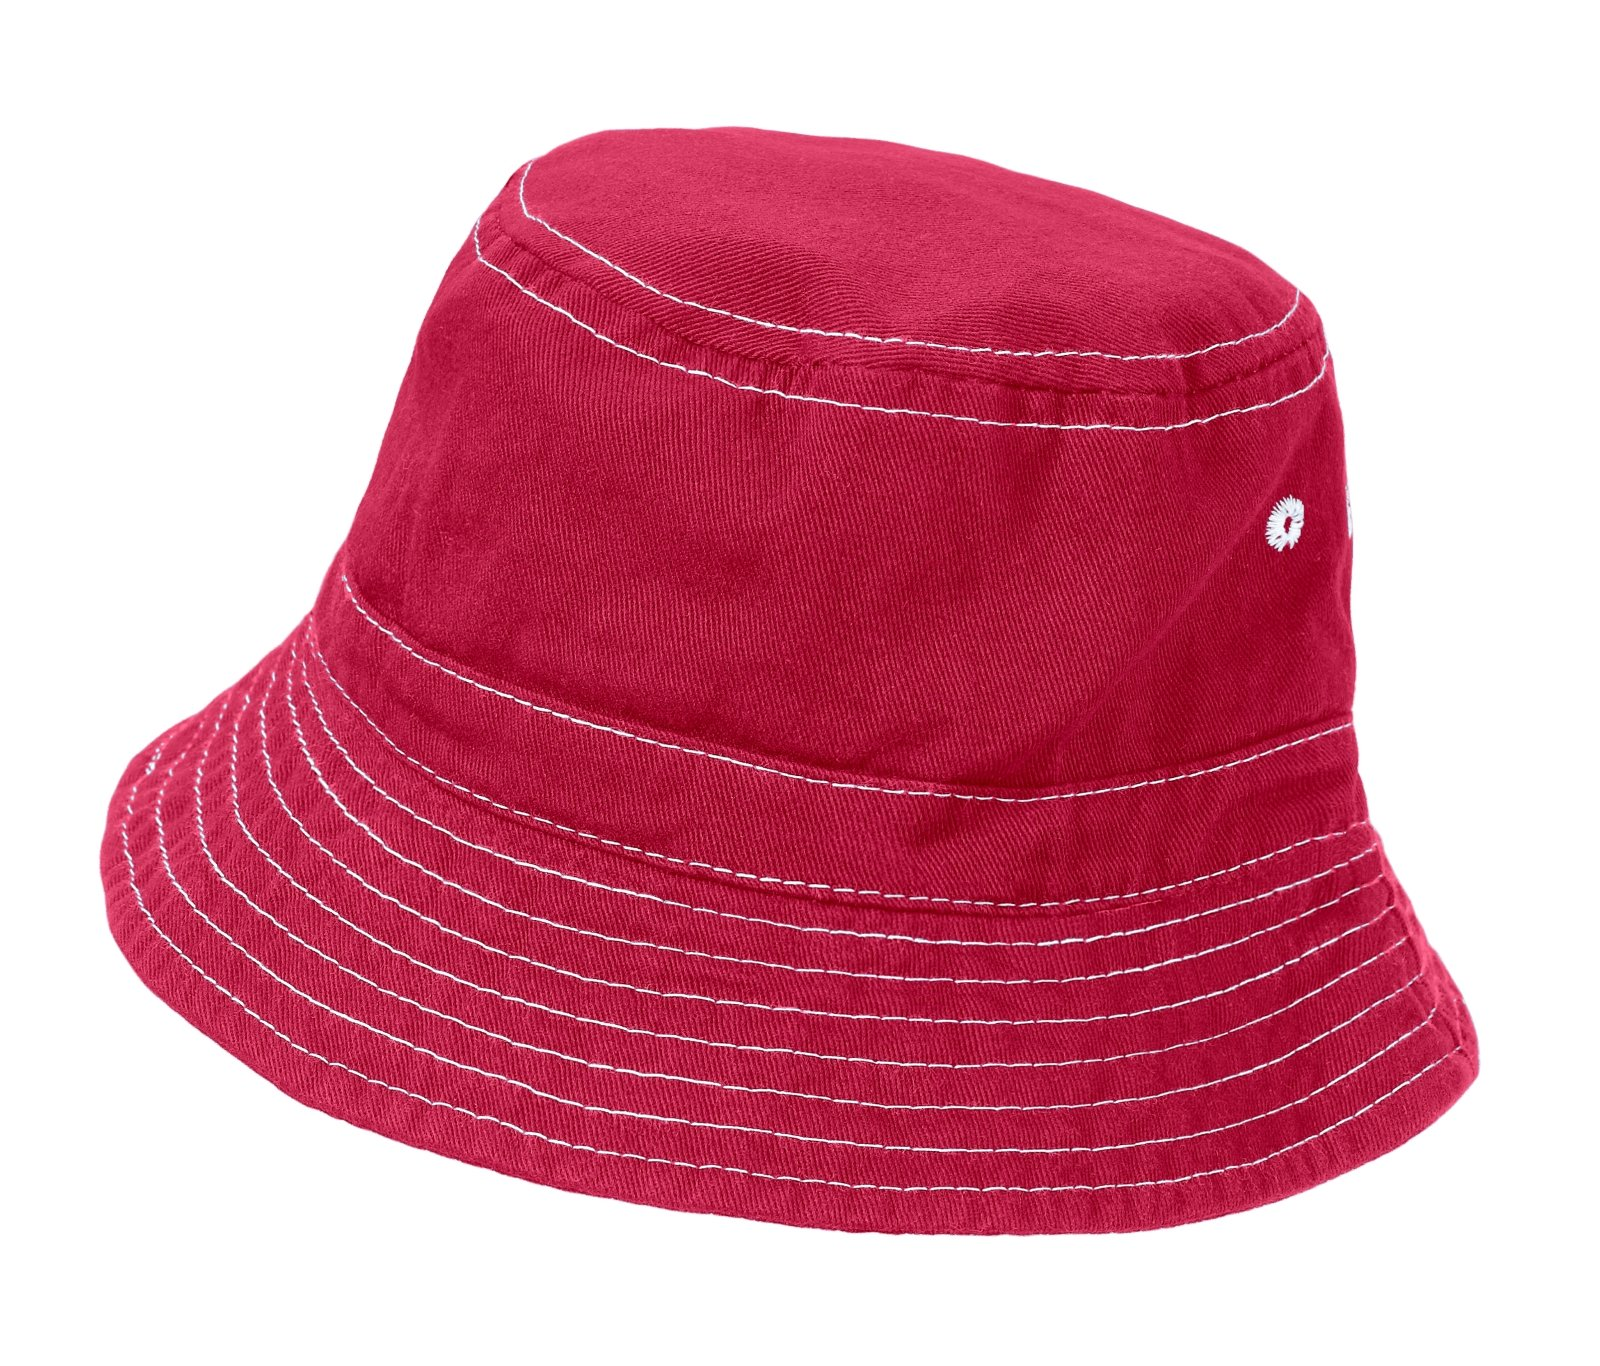 City Threads Big Boys' and Girls' Solid Wharf Hat Bucket Hat for Sun Protection SPF Beach Summer - Candy Apple - S(0-6M)